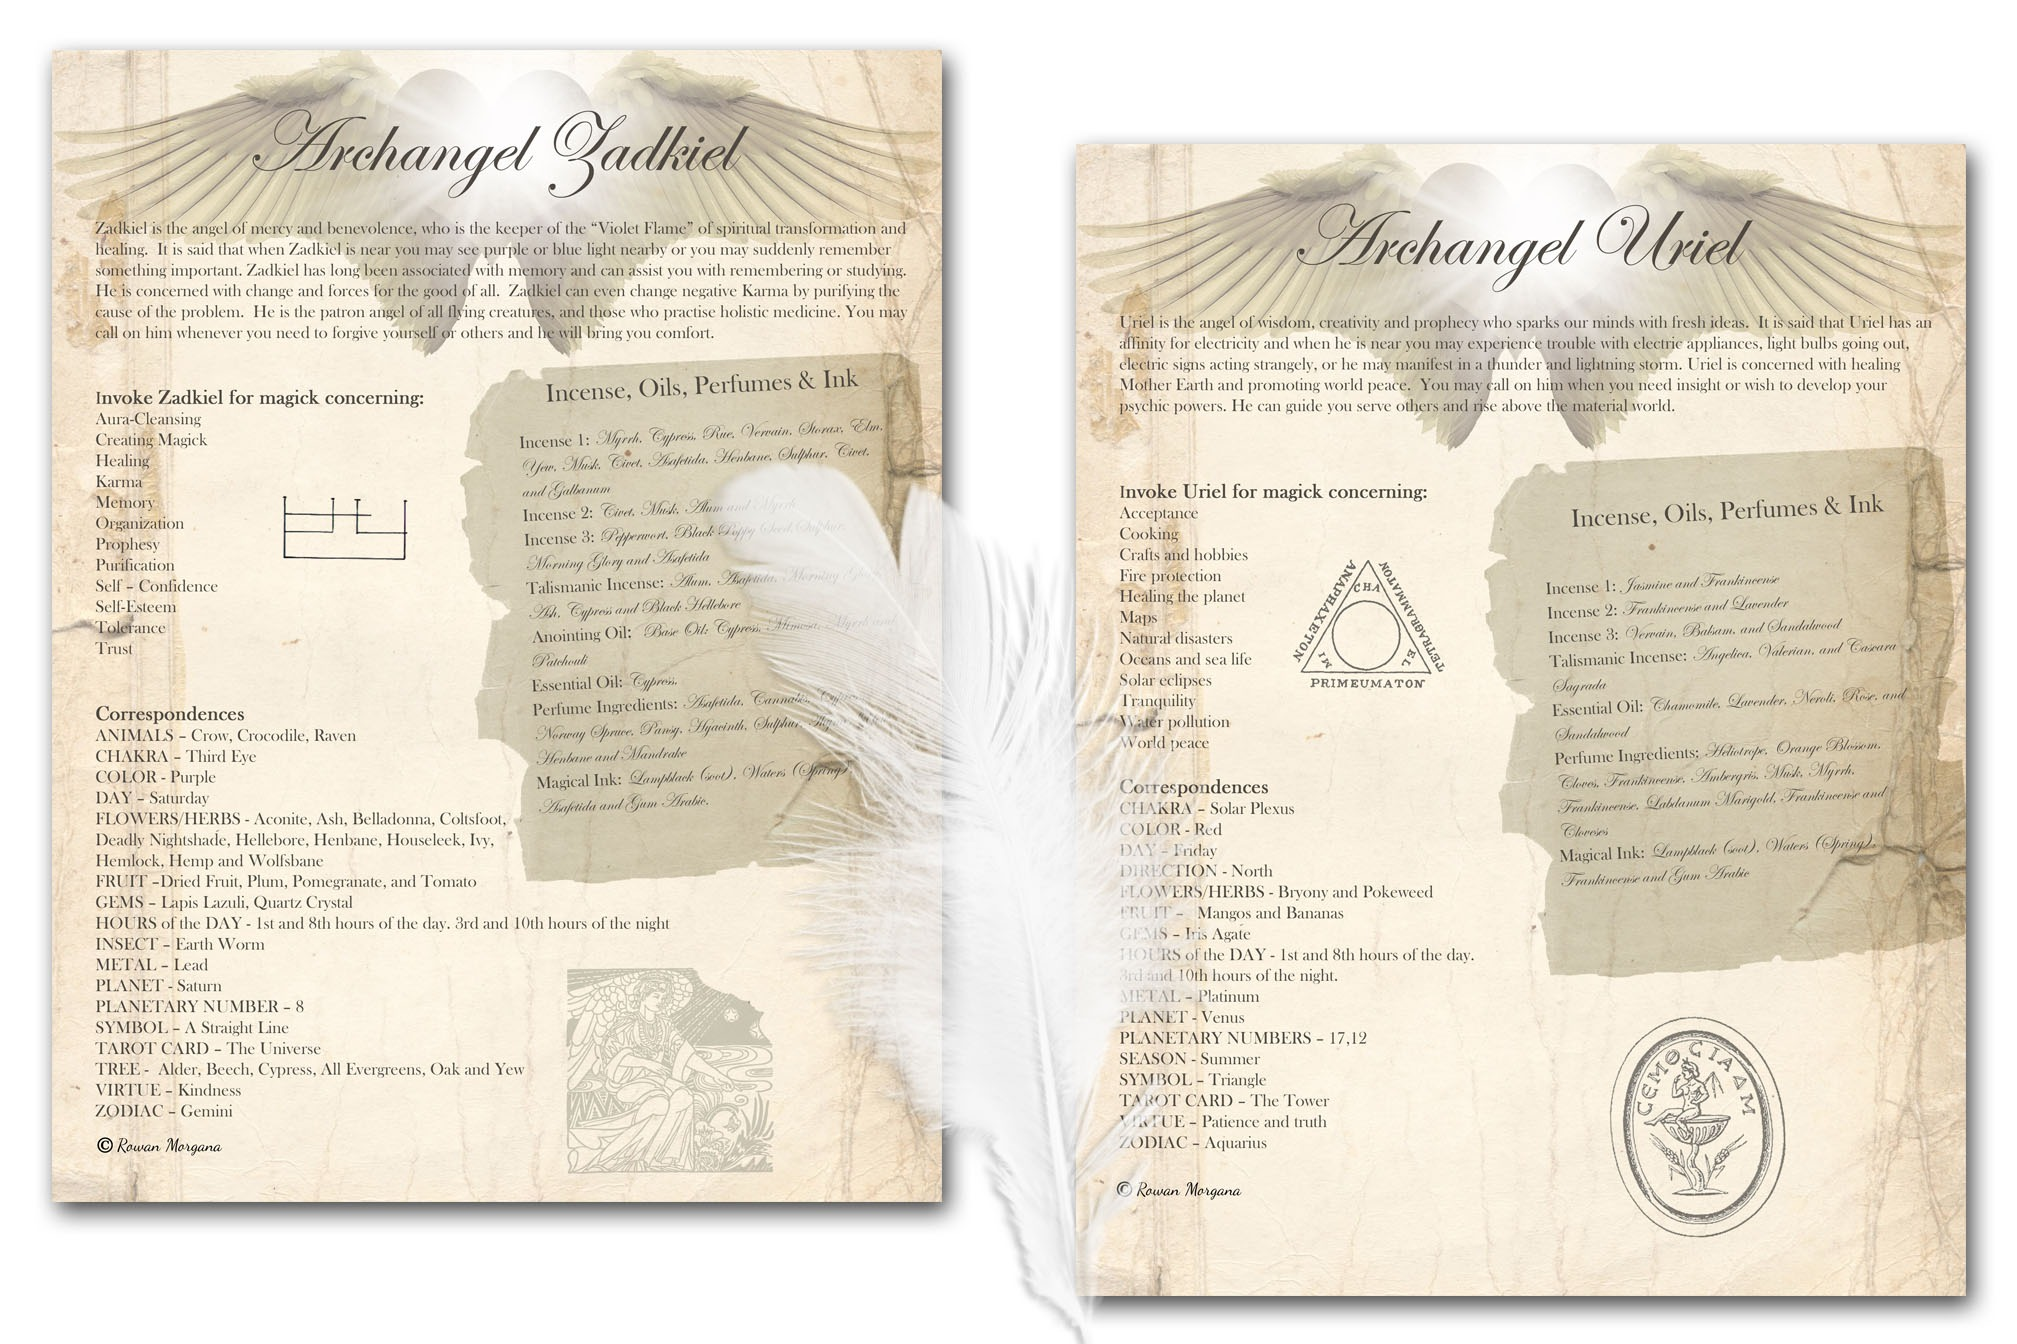 7 ARCHANGELS  7 Printable Pages